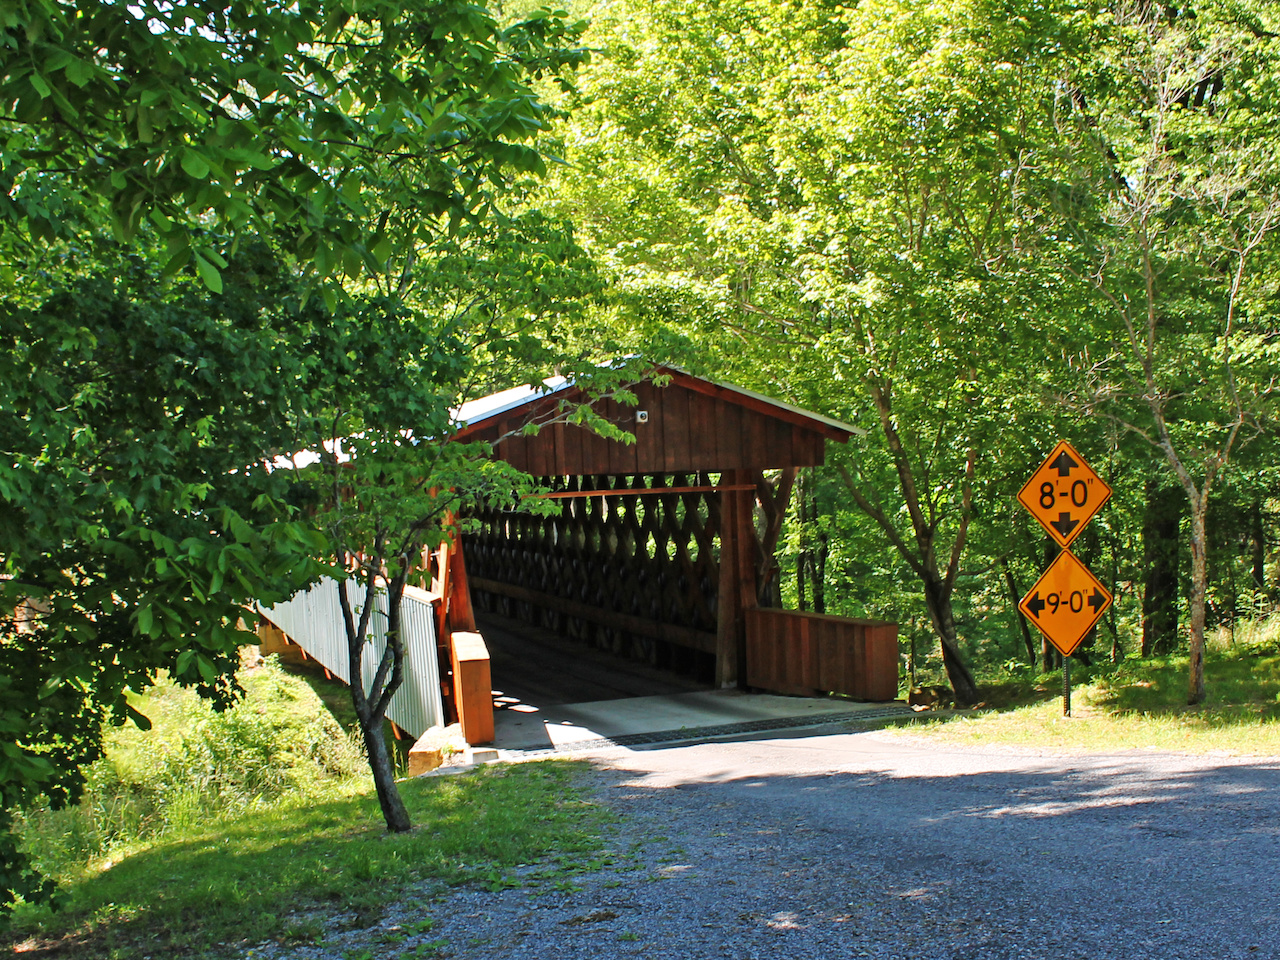 Old Easley Bridge is surrounded by lush greenery on Easley Bridge Road.